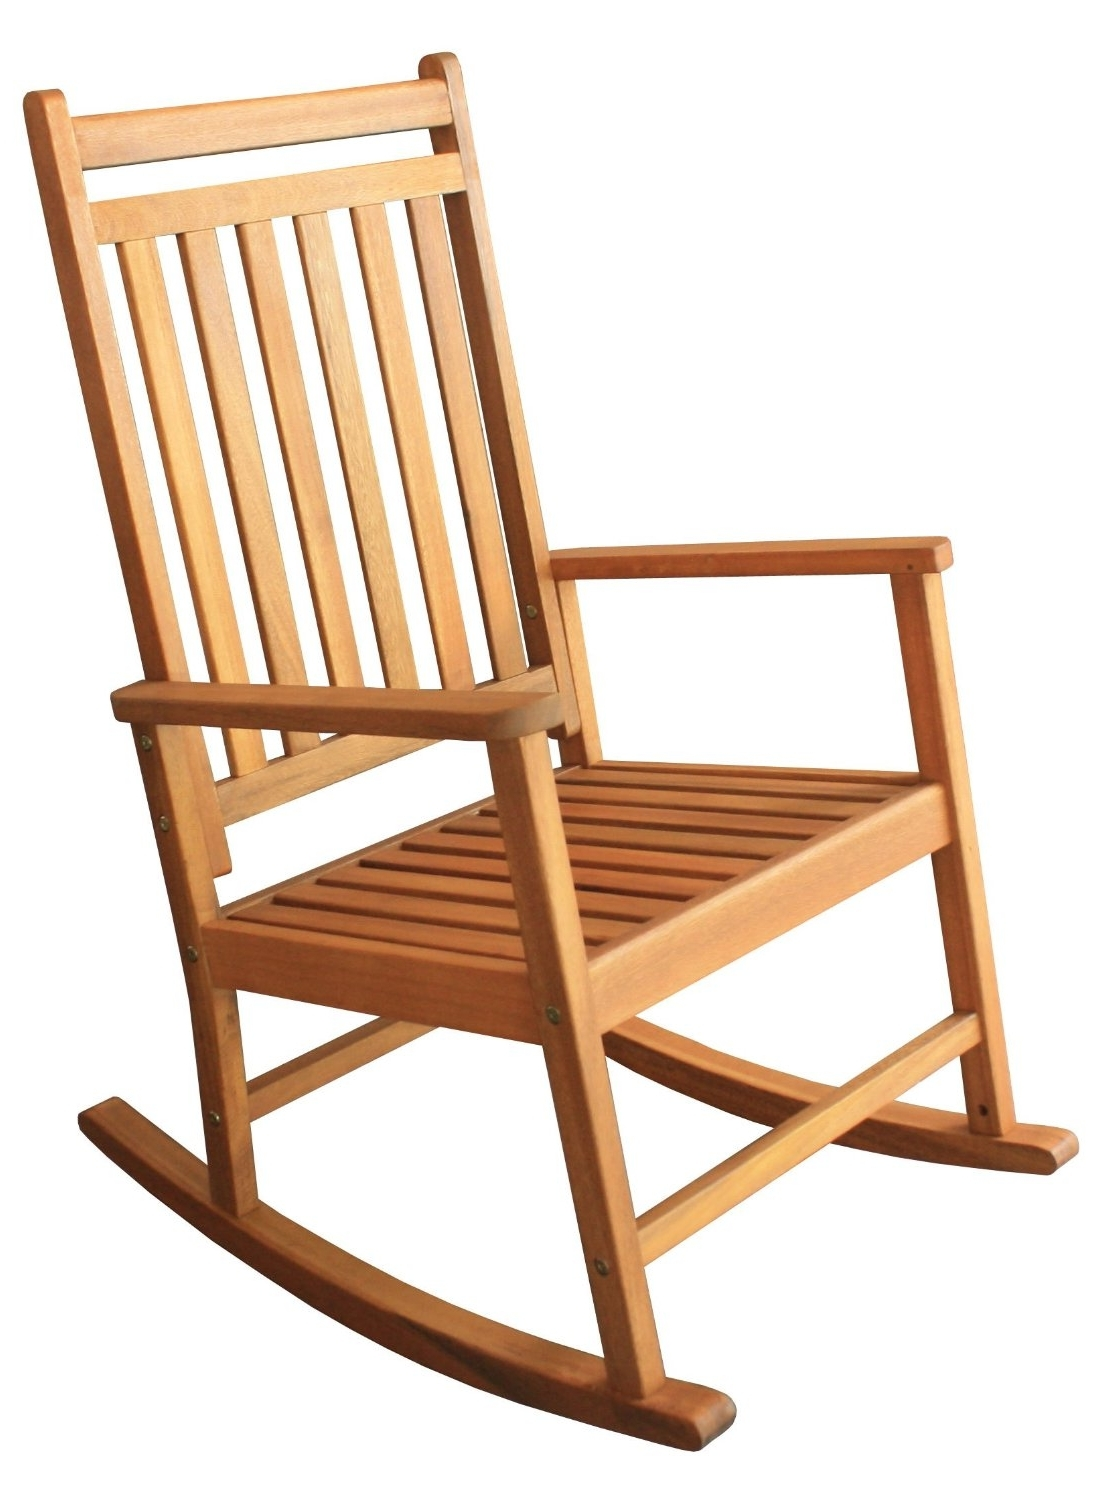 Rocking Chair Outdoor Wooden In Most Up To Date Wood Rocking Chair Images – Wood Rocking Chair Buying Considerations (View 10 of 15)